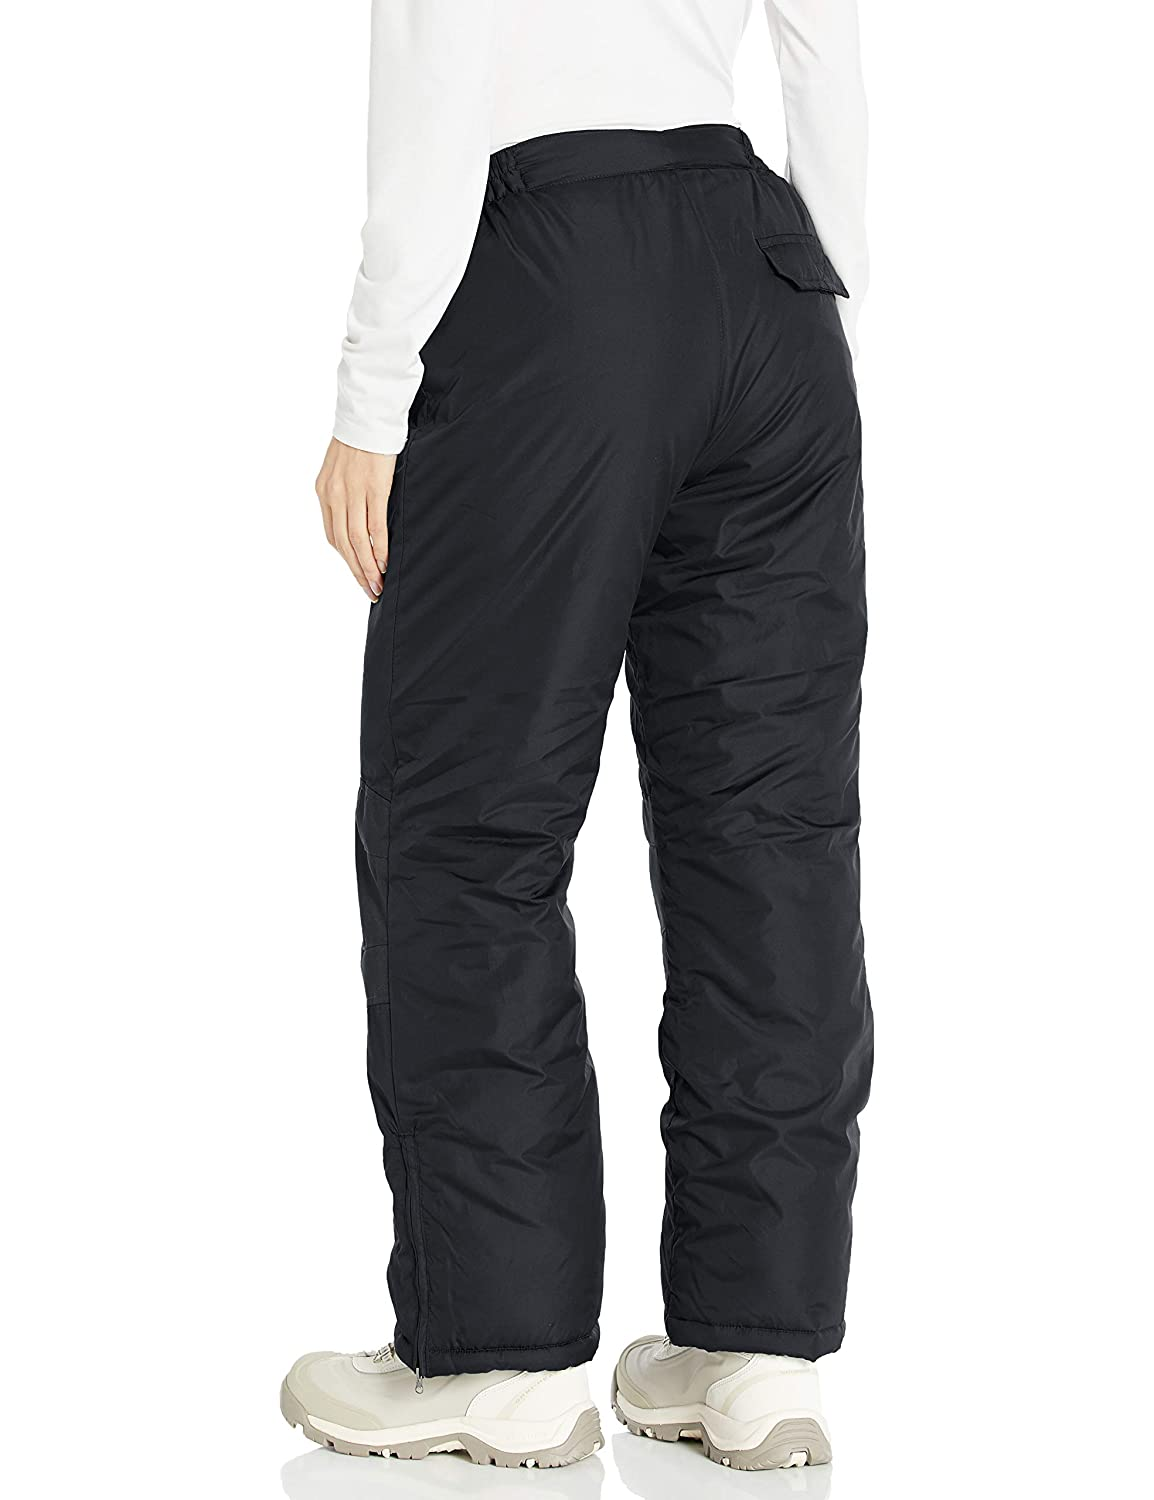 Womens Outerwear Womens Snow Pants Cherokee